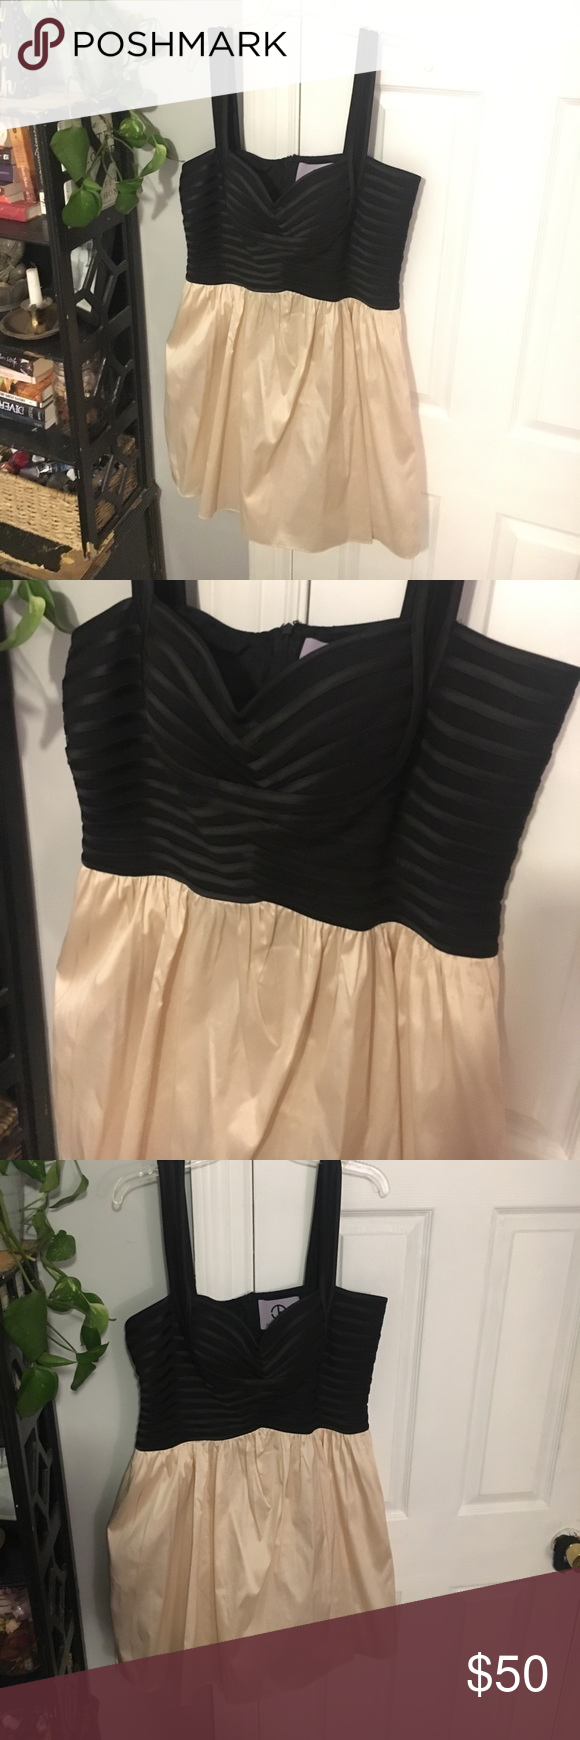 Black and pink formal cocktail dress